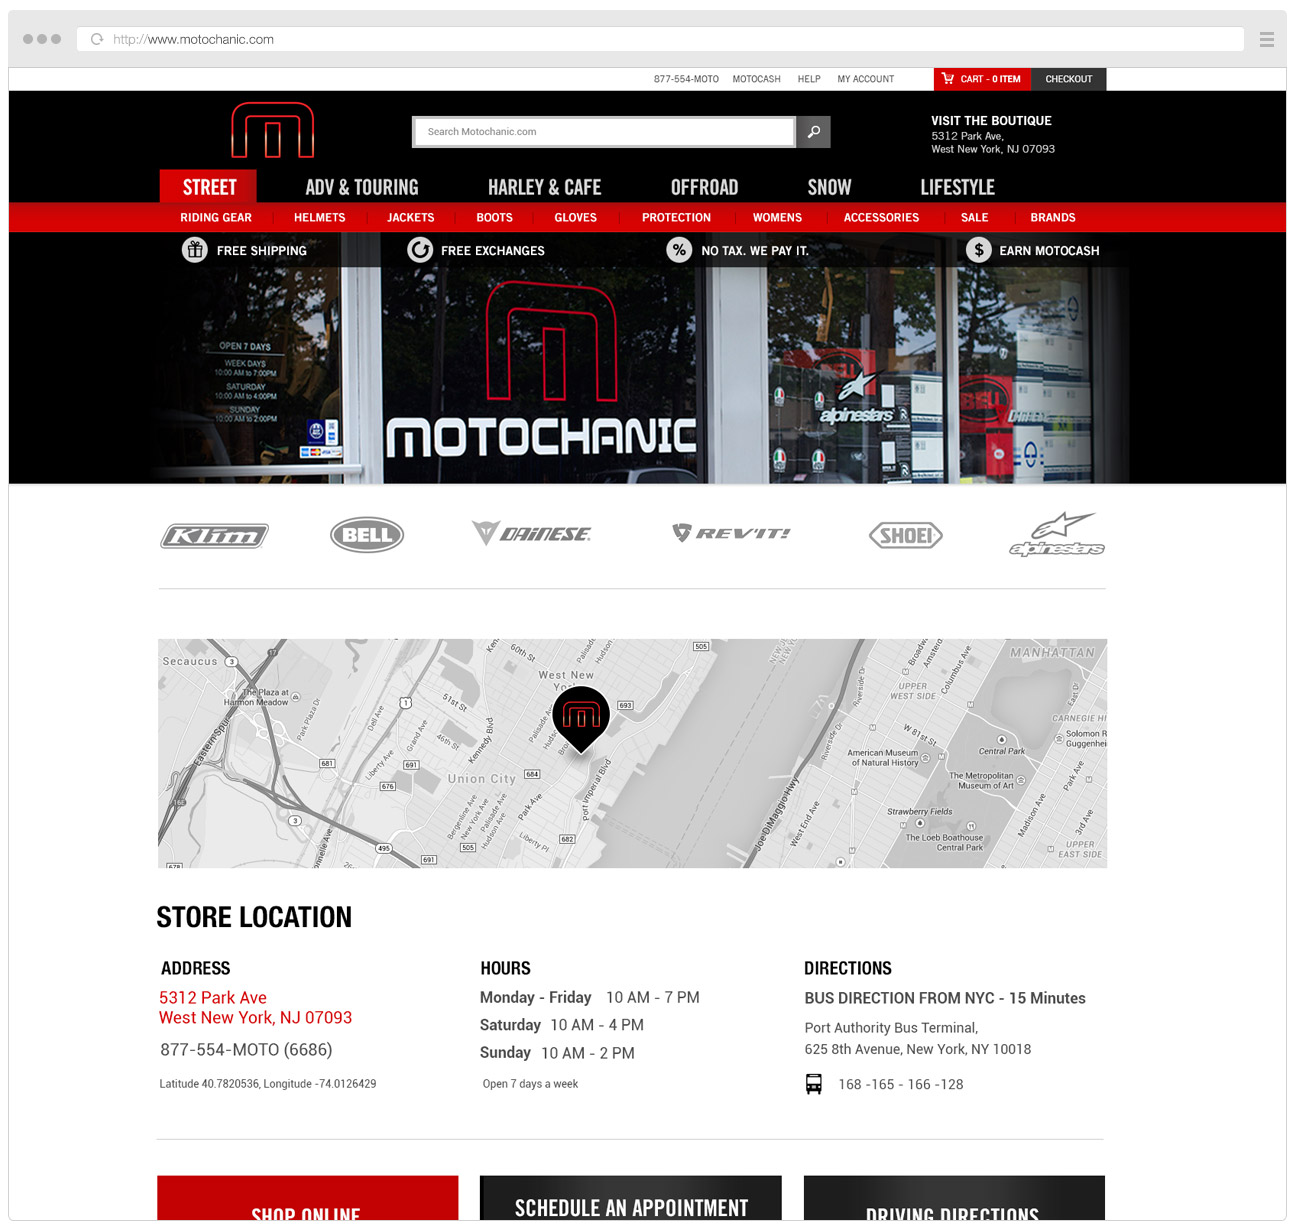 Motochanic Retail Page